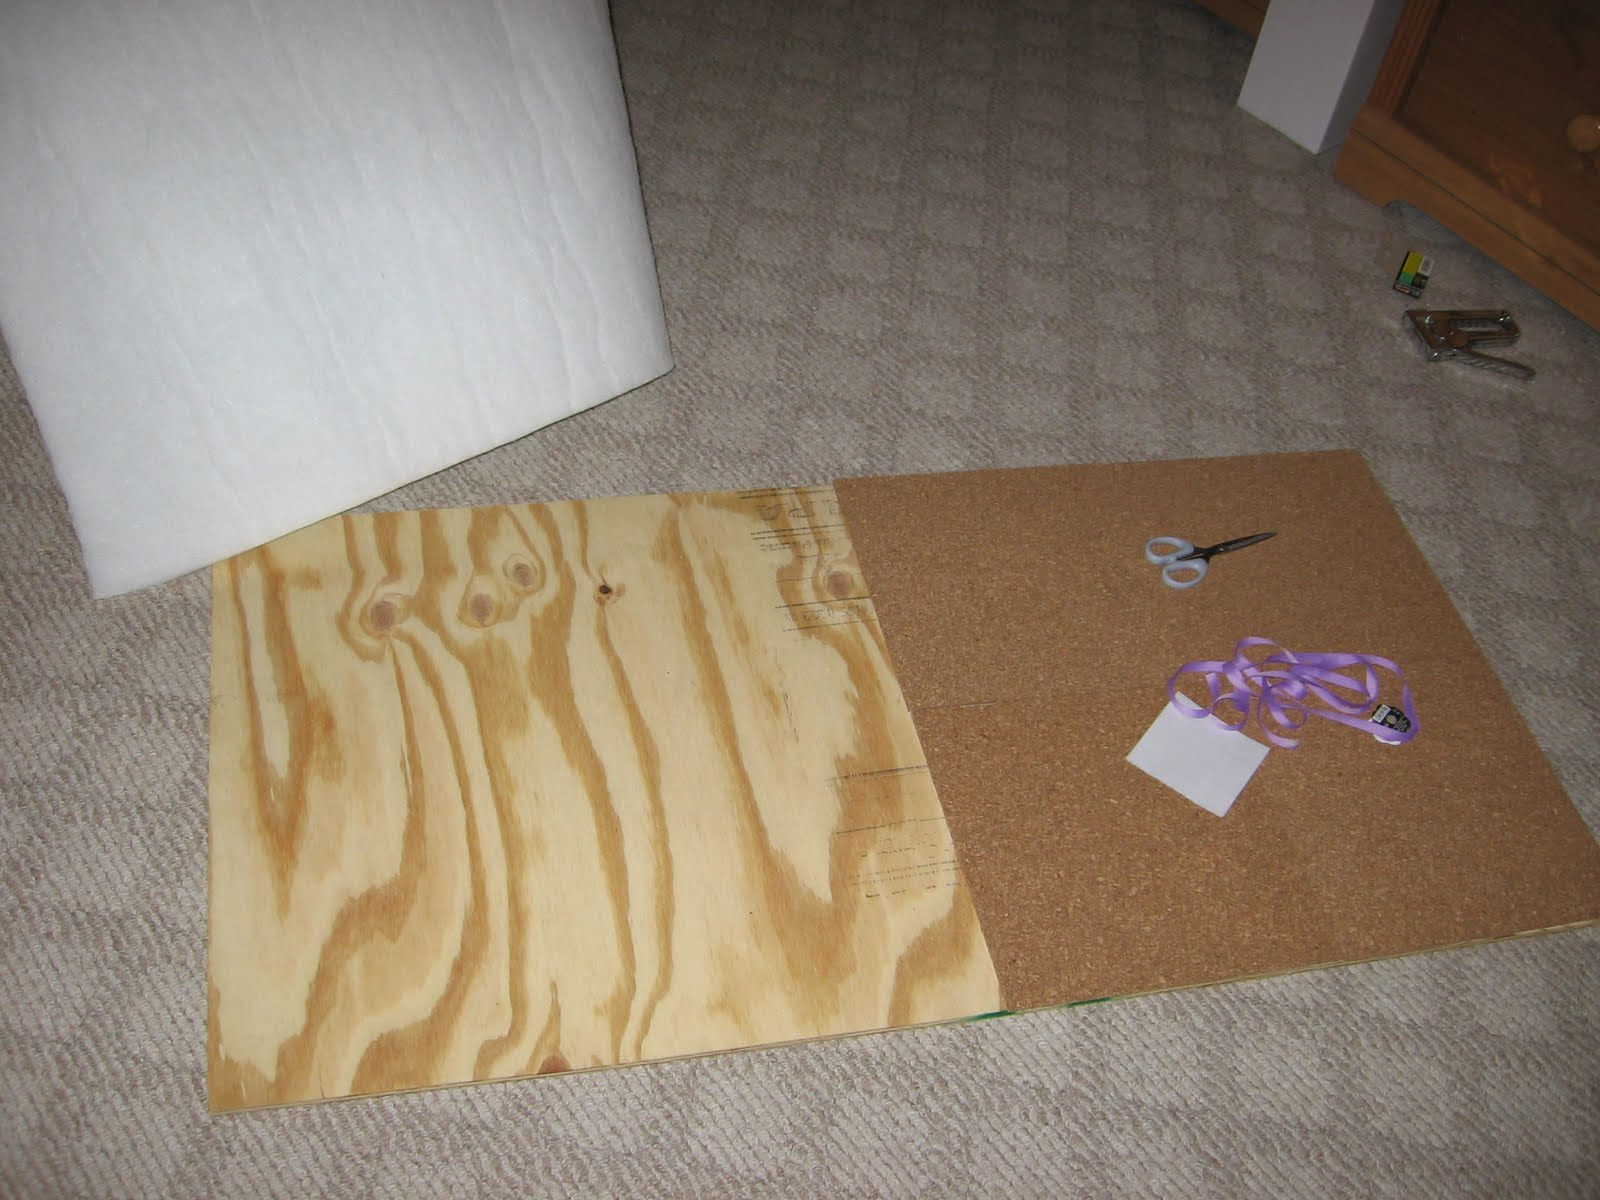 crowley party of make your own memo board cork board i placed the cork down and then cut the stuffing to fit in the open spot if you are going to make this do not stick the cork down yet